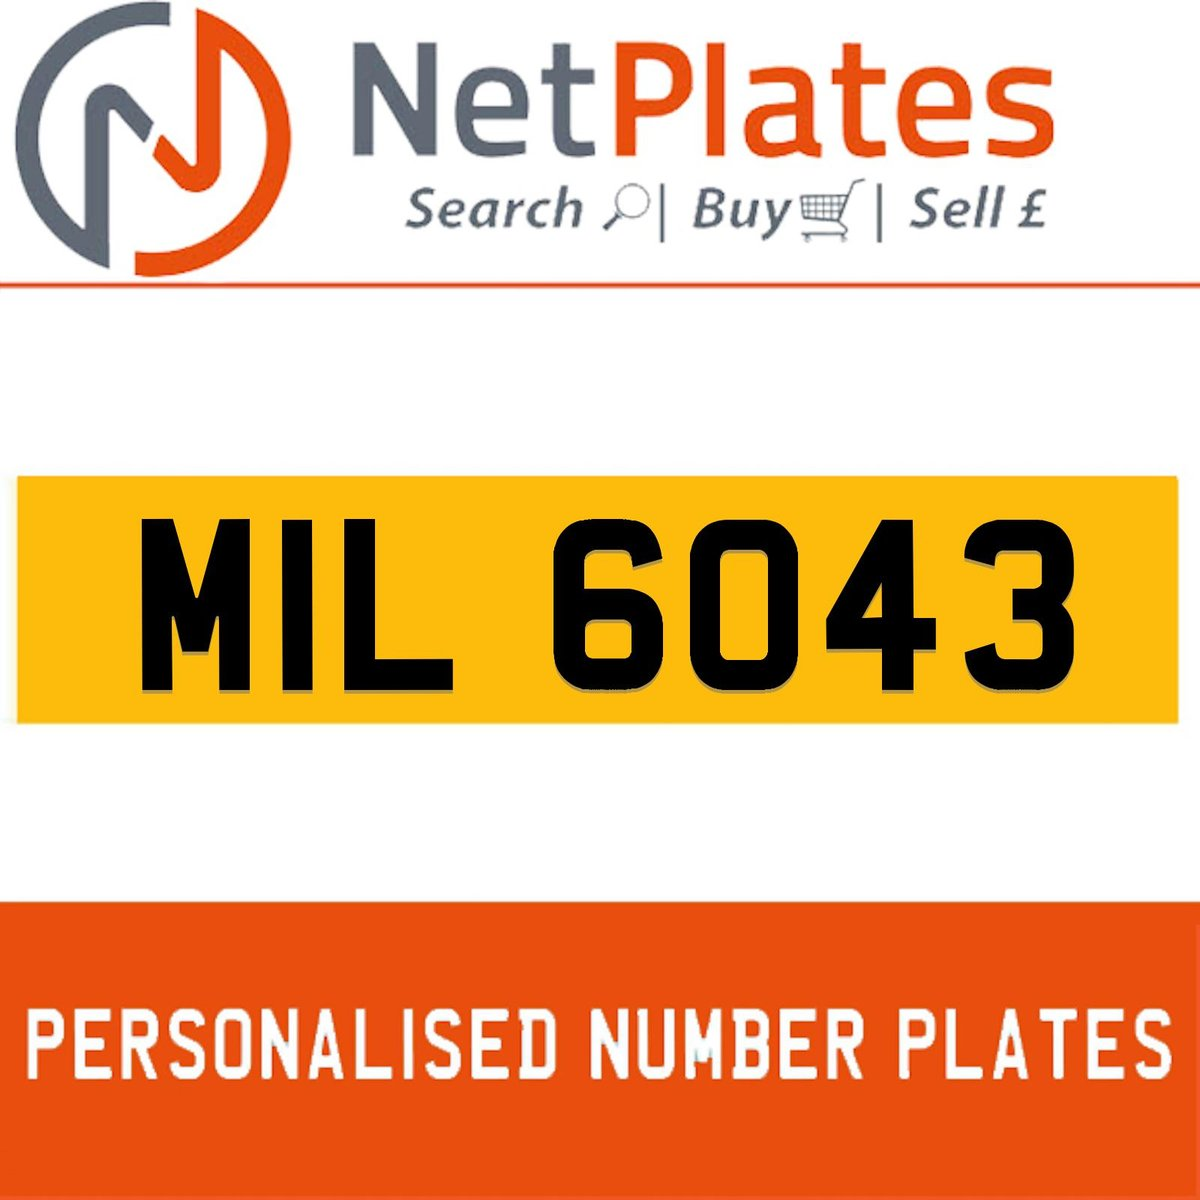 MIL 6043 PERSONALISED PRIVATE CHERISHED DVLA NUMBER PLATE For Sale (picture 1 of 5)